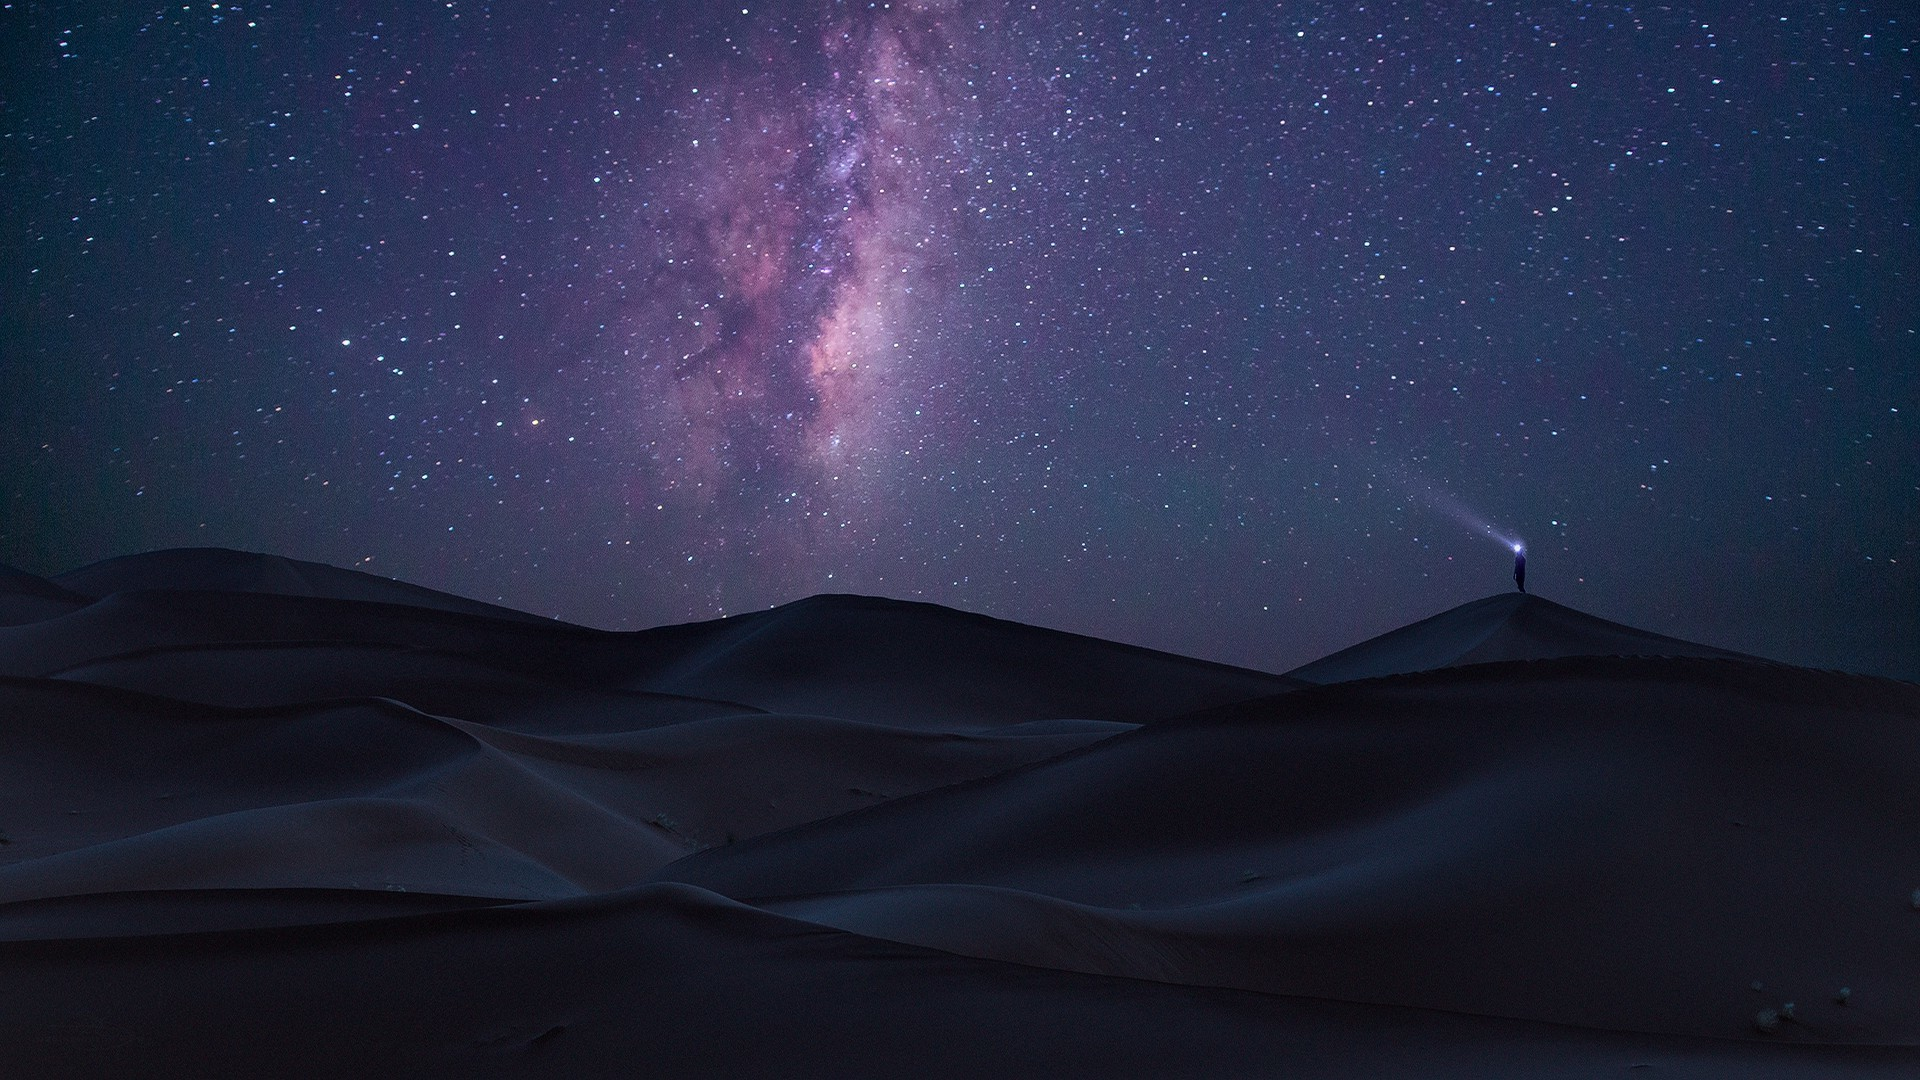 1920x1080 nature, Landscape, Long Exposure, Desert, Sahara, Milky Way, Starry Night,  Dune, Space Wallpapers HD / Desktop and Mobile Backgrounds